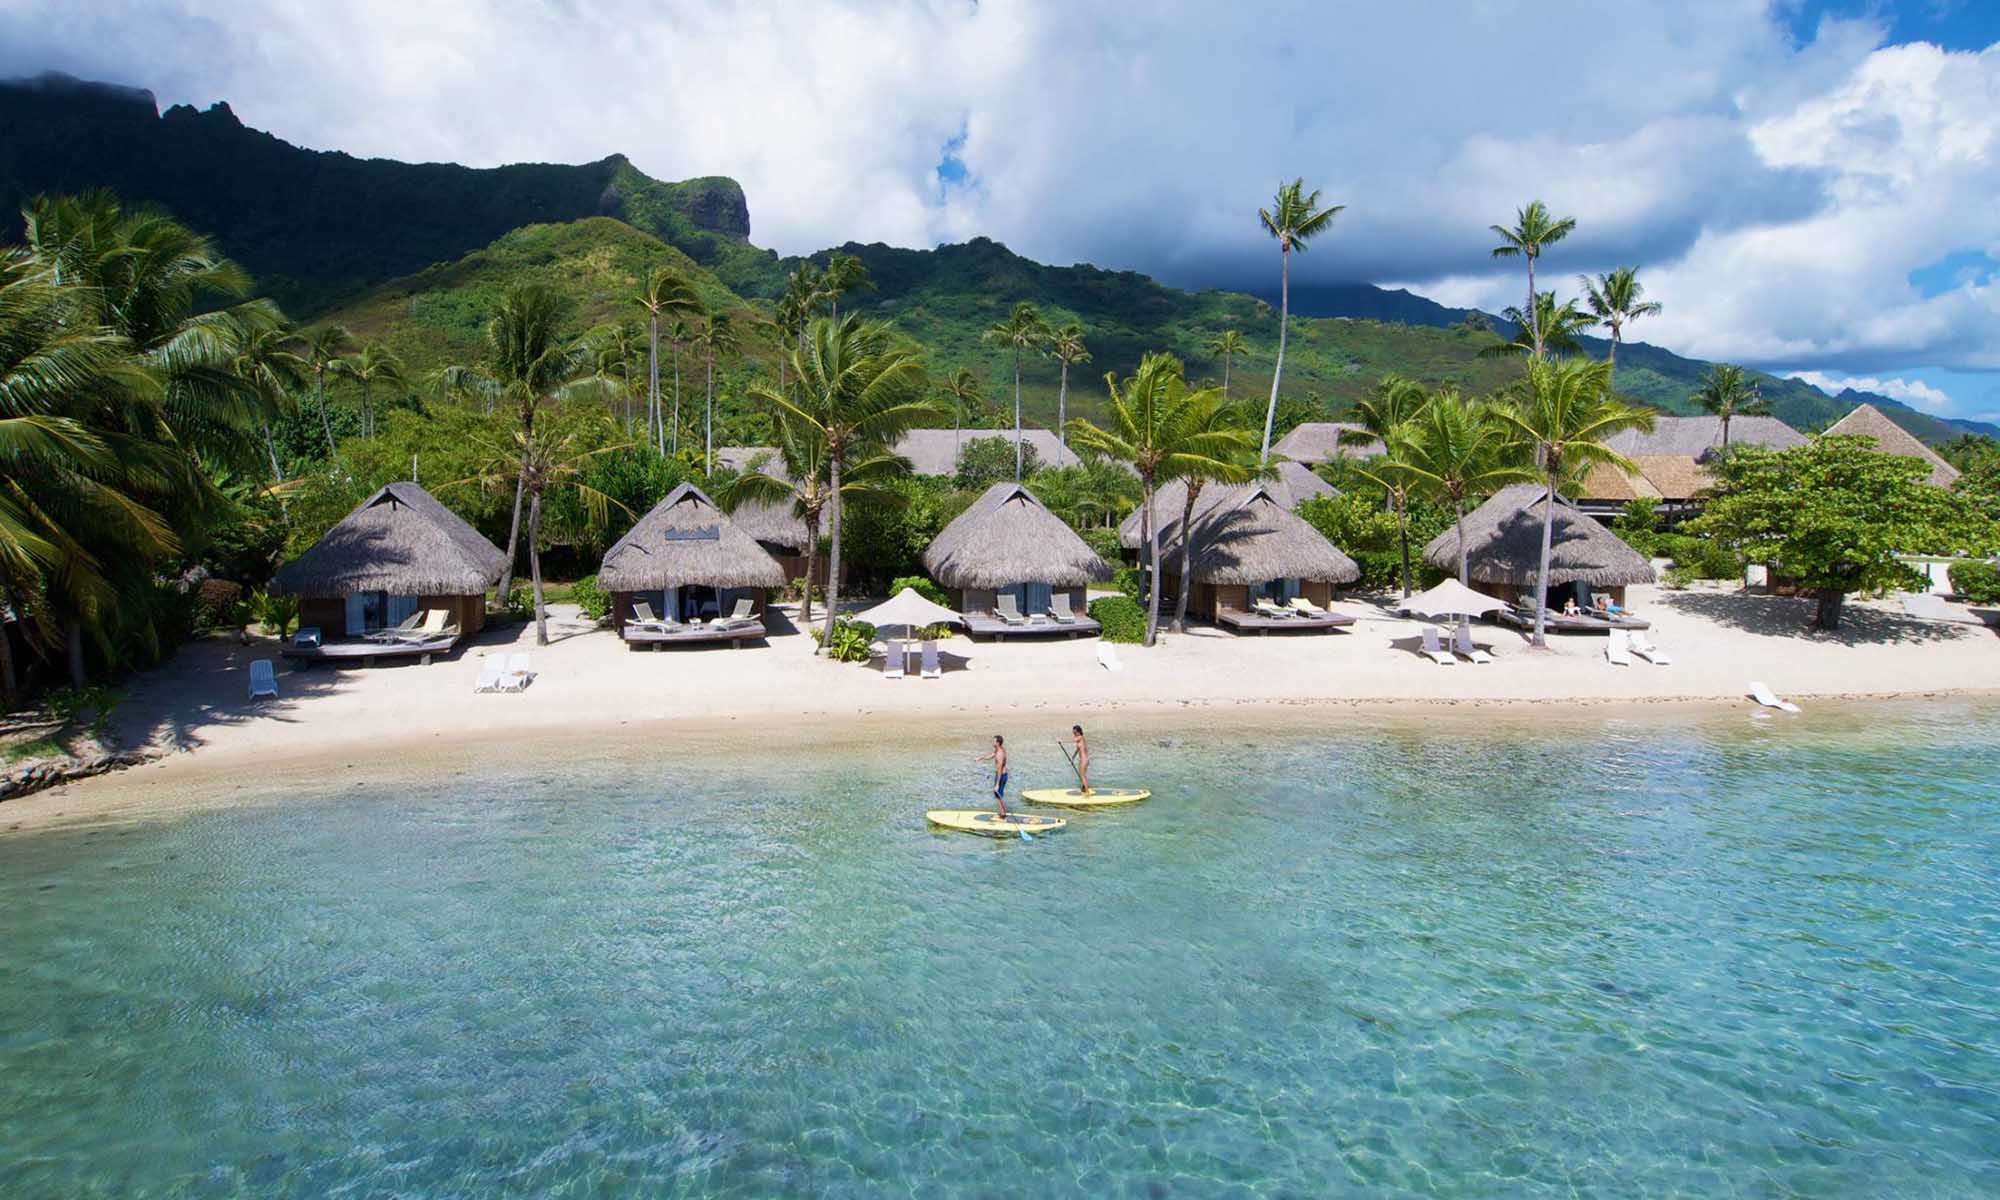 Manava Beach Resort & Spa, Paddleboarding